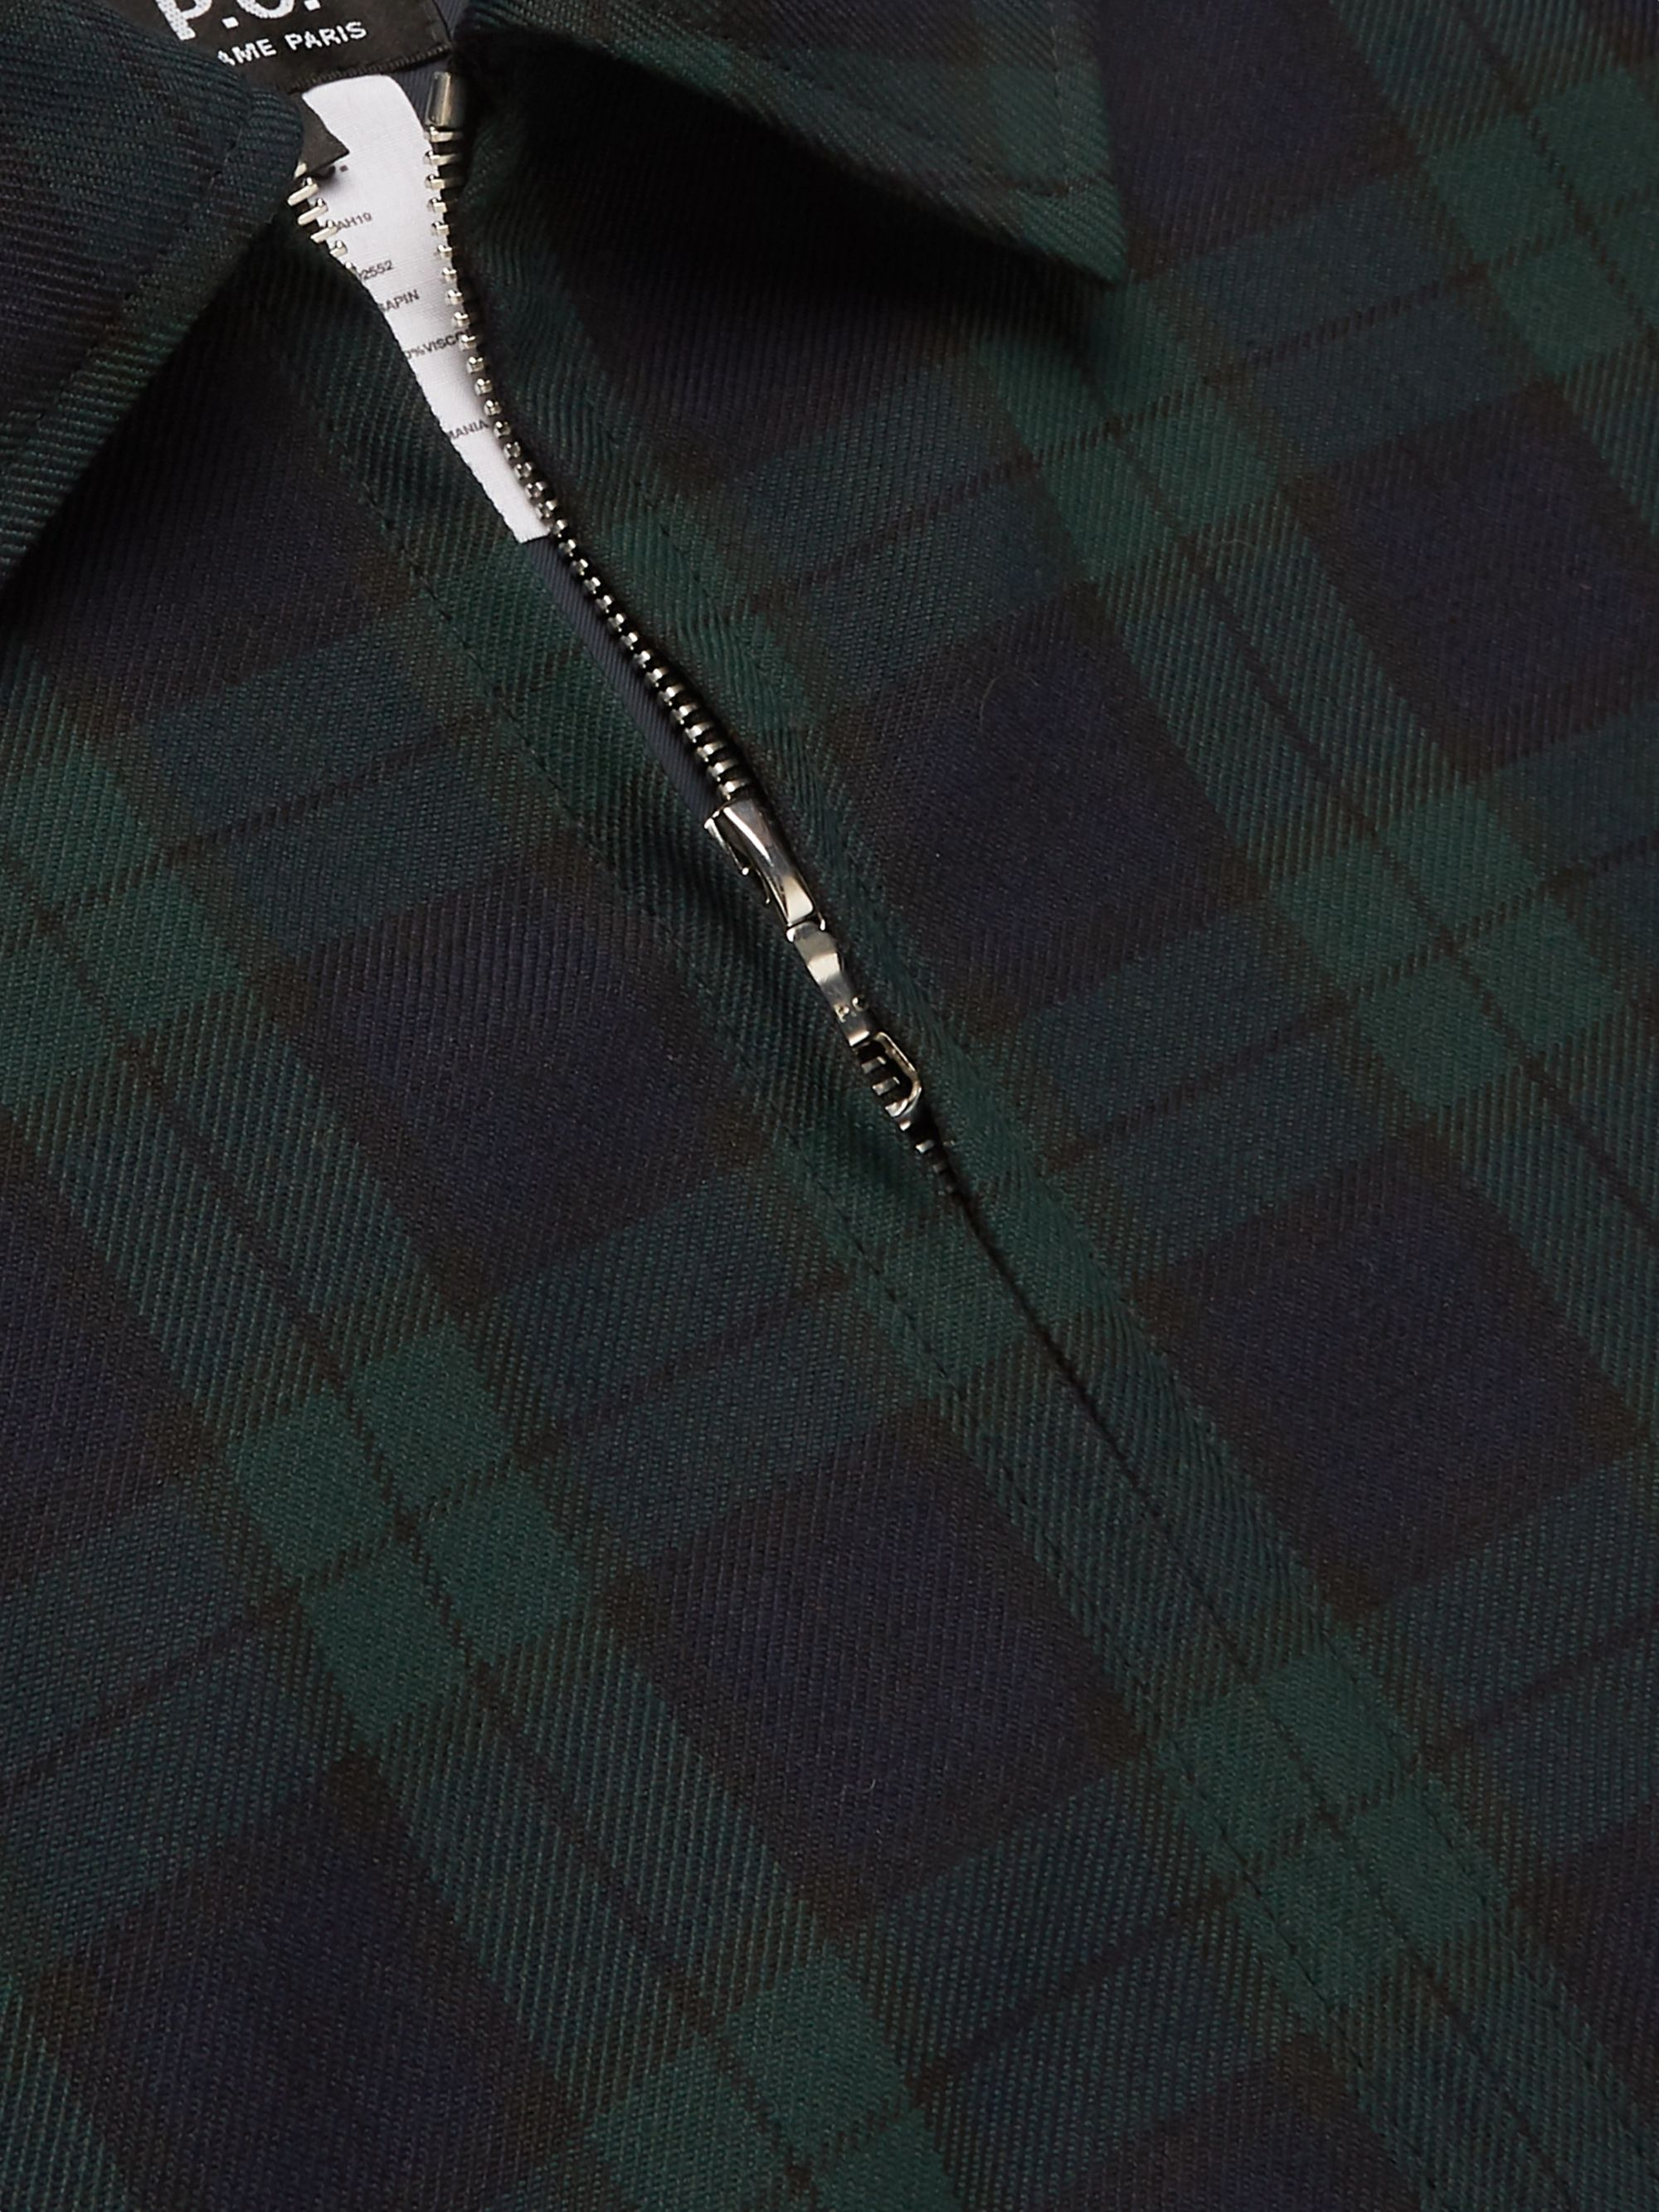 A.P.C. Blackwatch Checked Twill Blouson Jacket